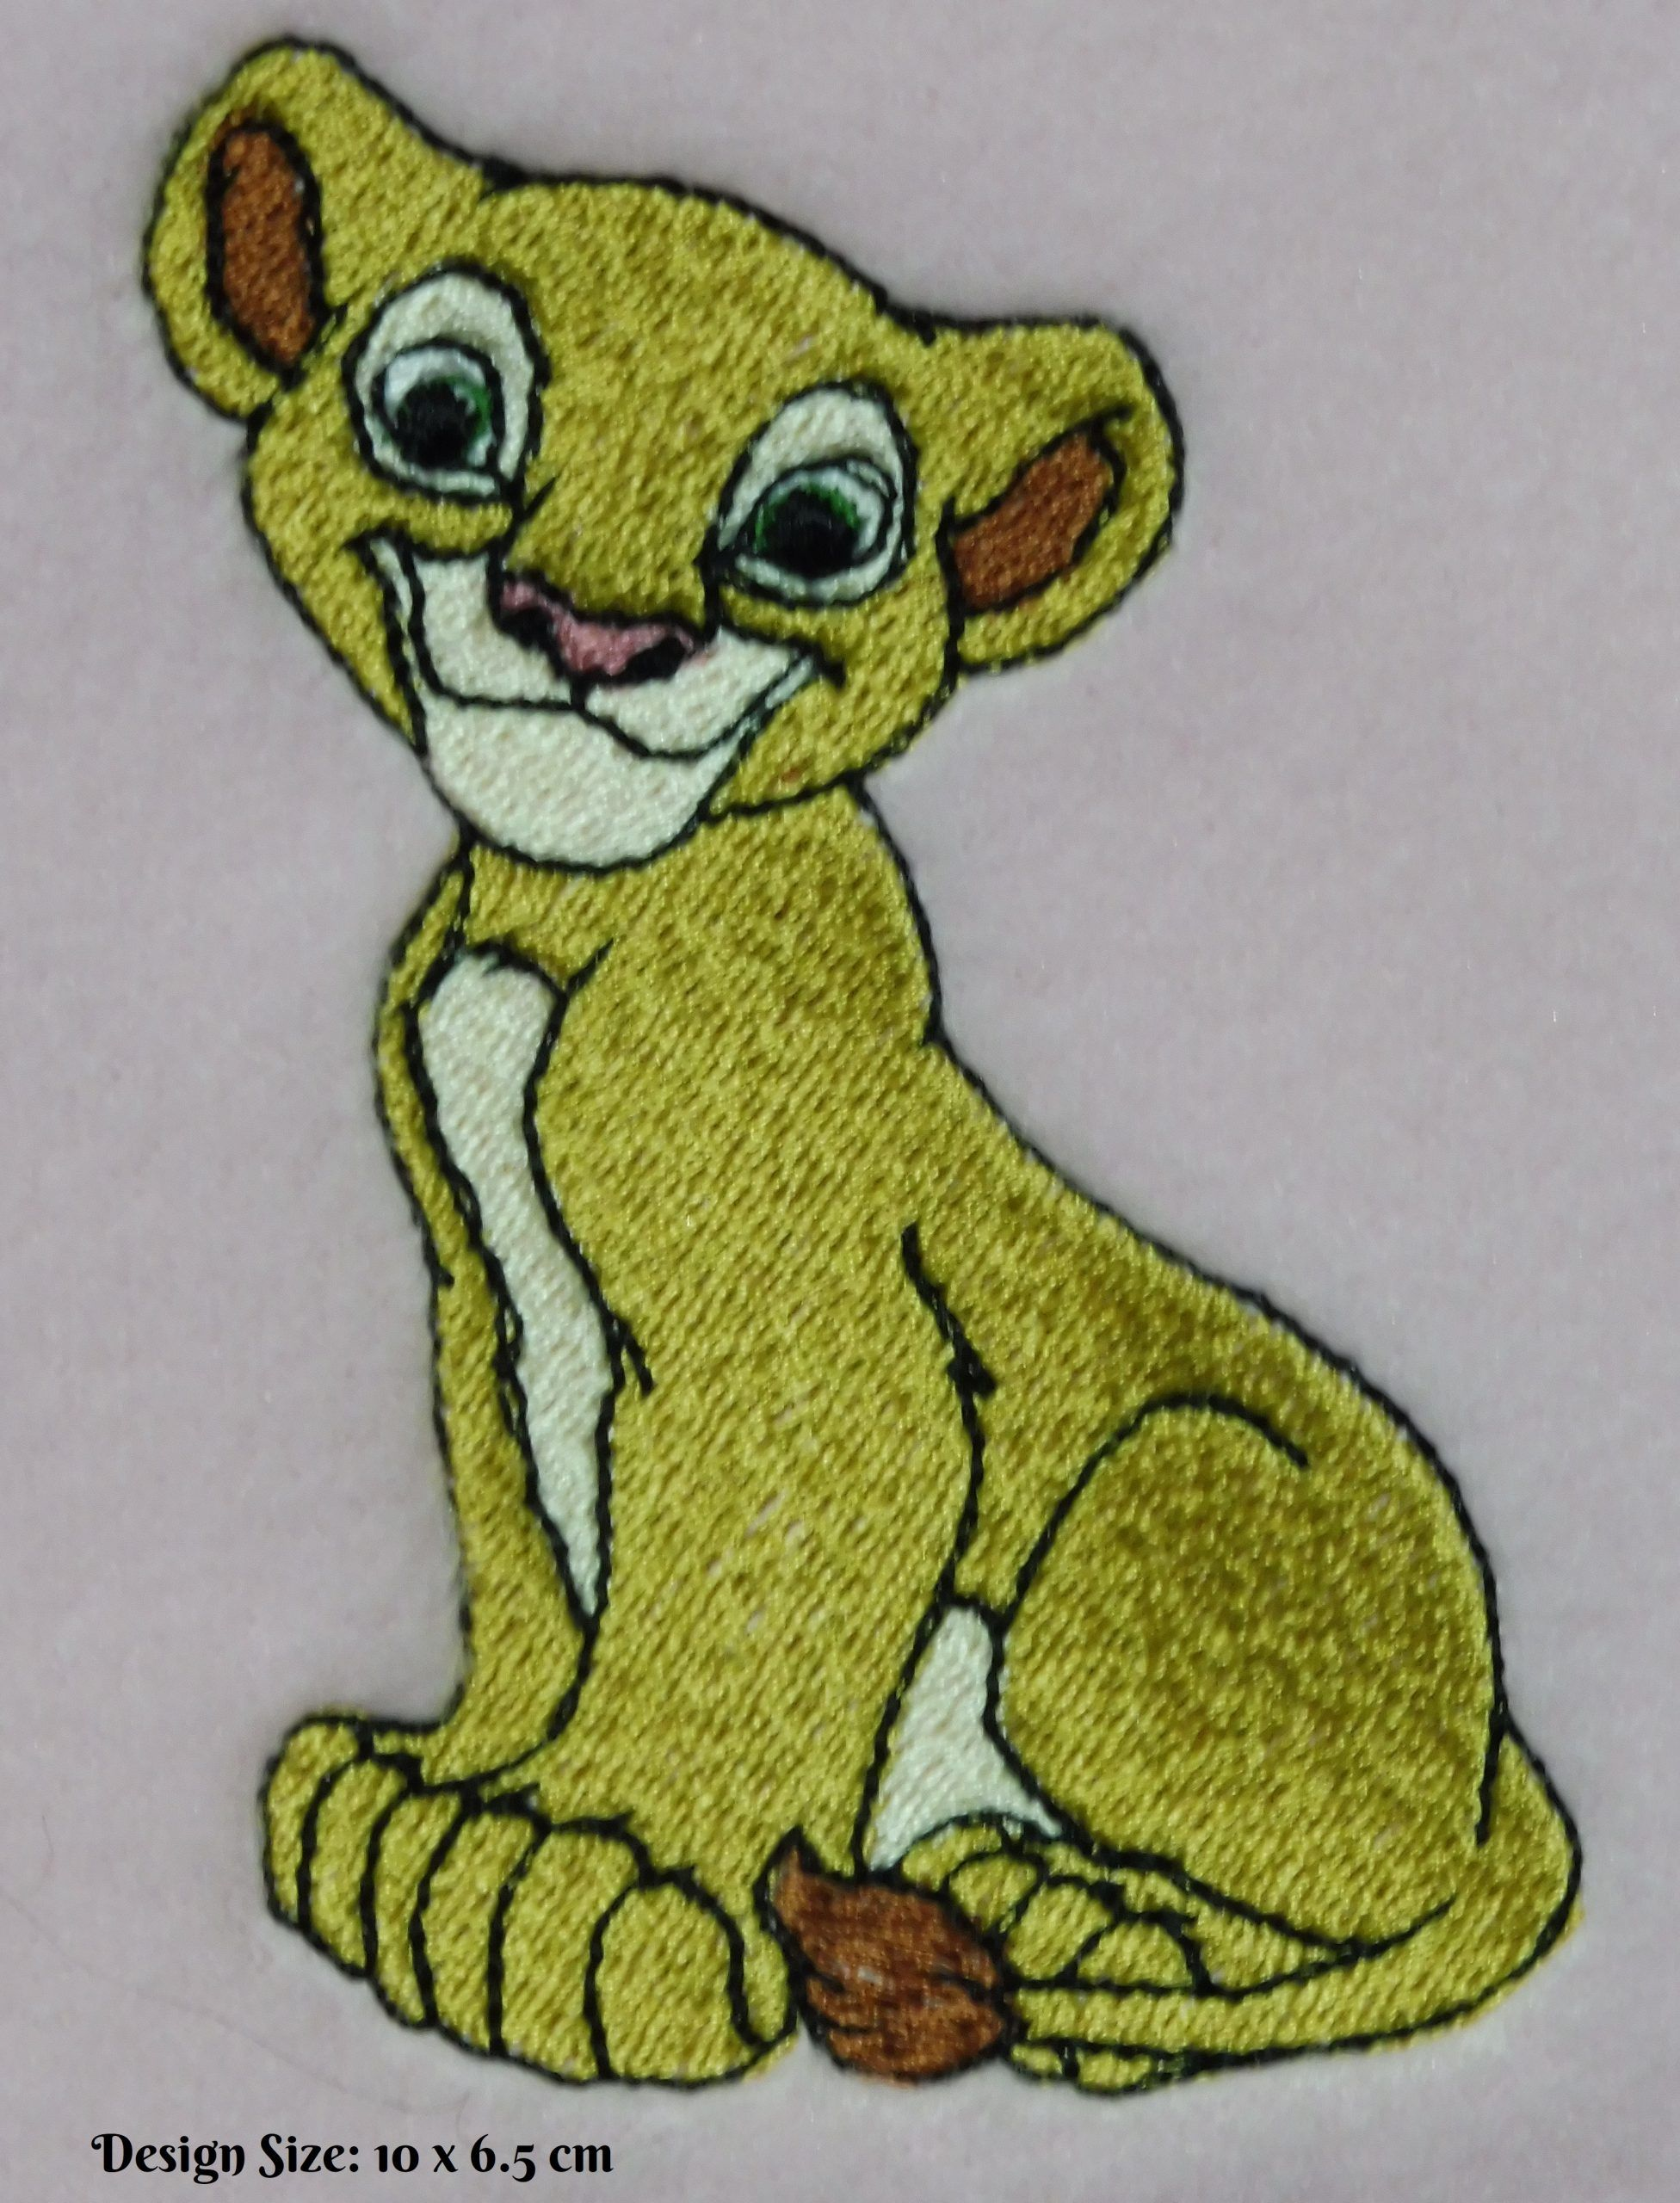 Embroidered Personalised Blanket//Towel Gift Baby Tigger Design